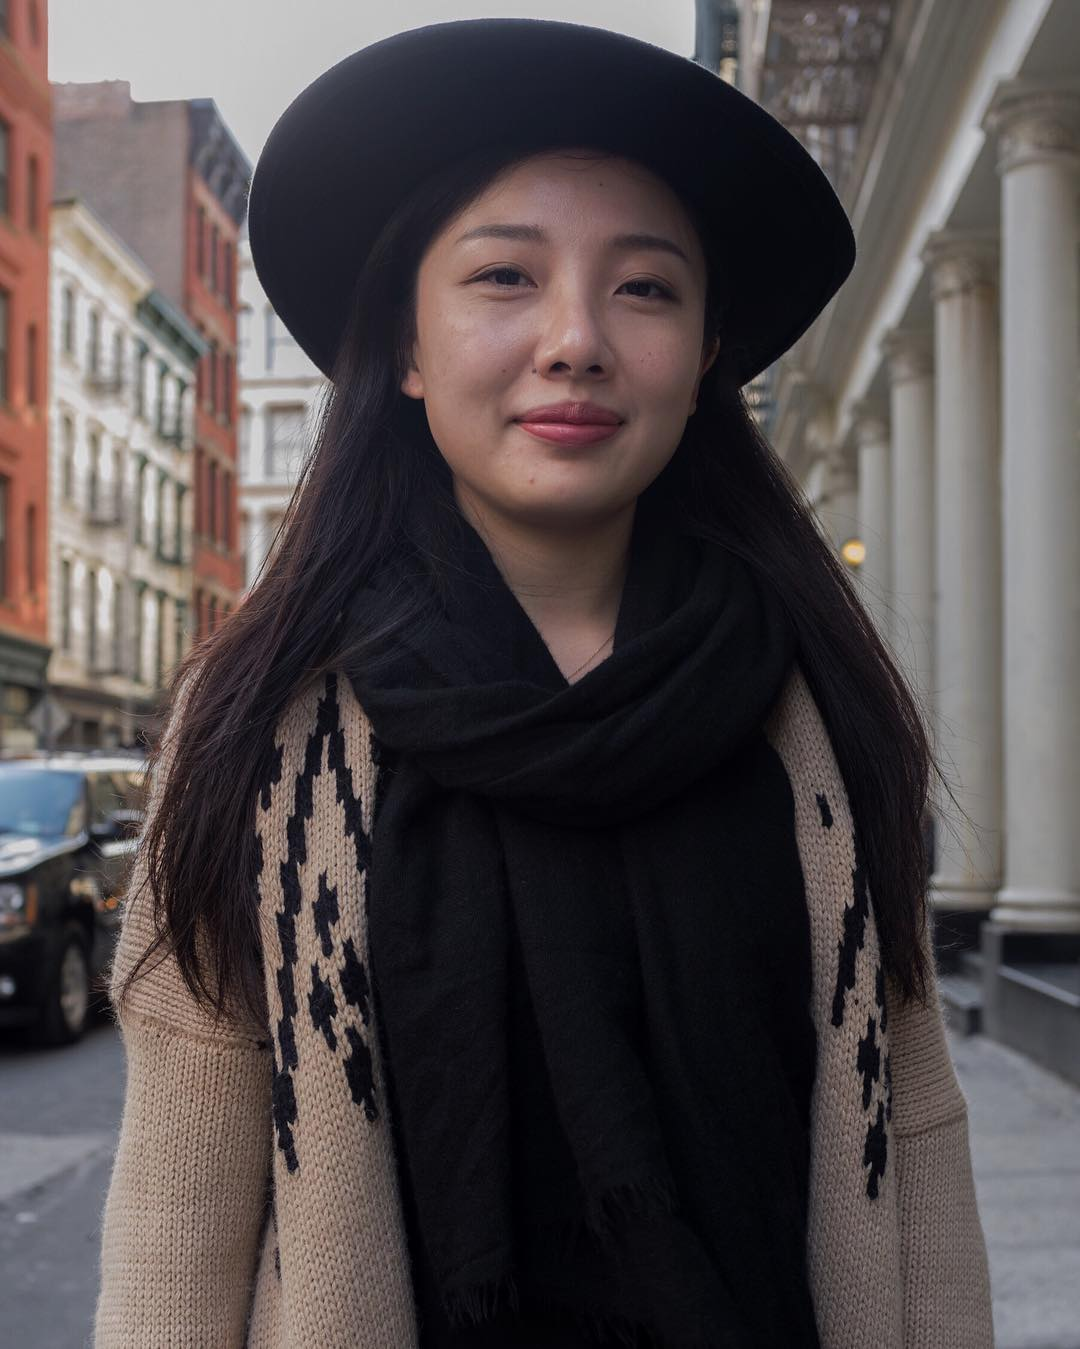 I saw Yoma () walking around SOHO. Her sweater hat combo was killer. How is your day going: Great What do you like about yourself?